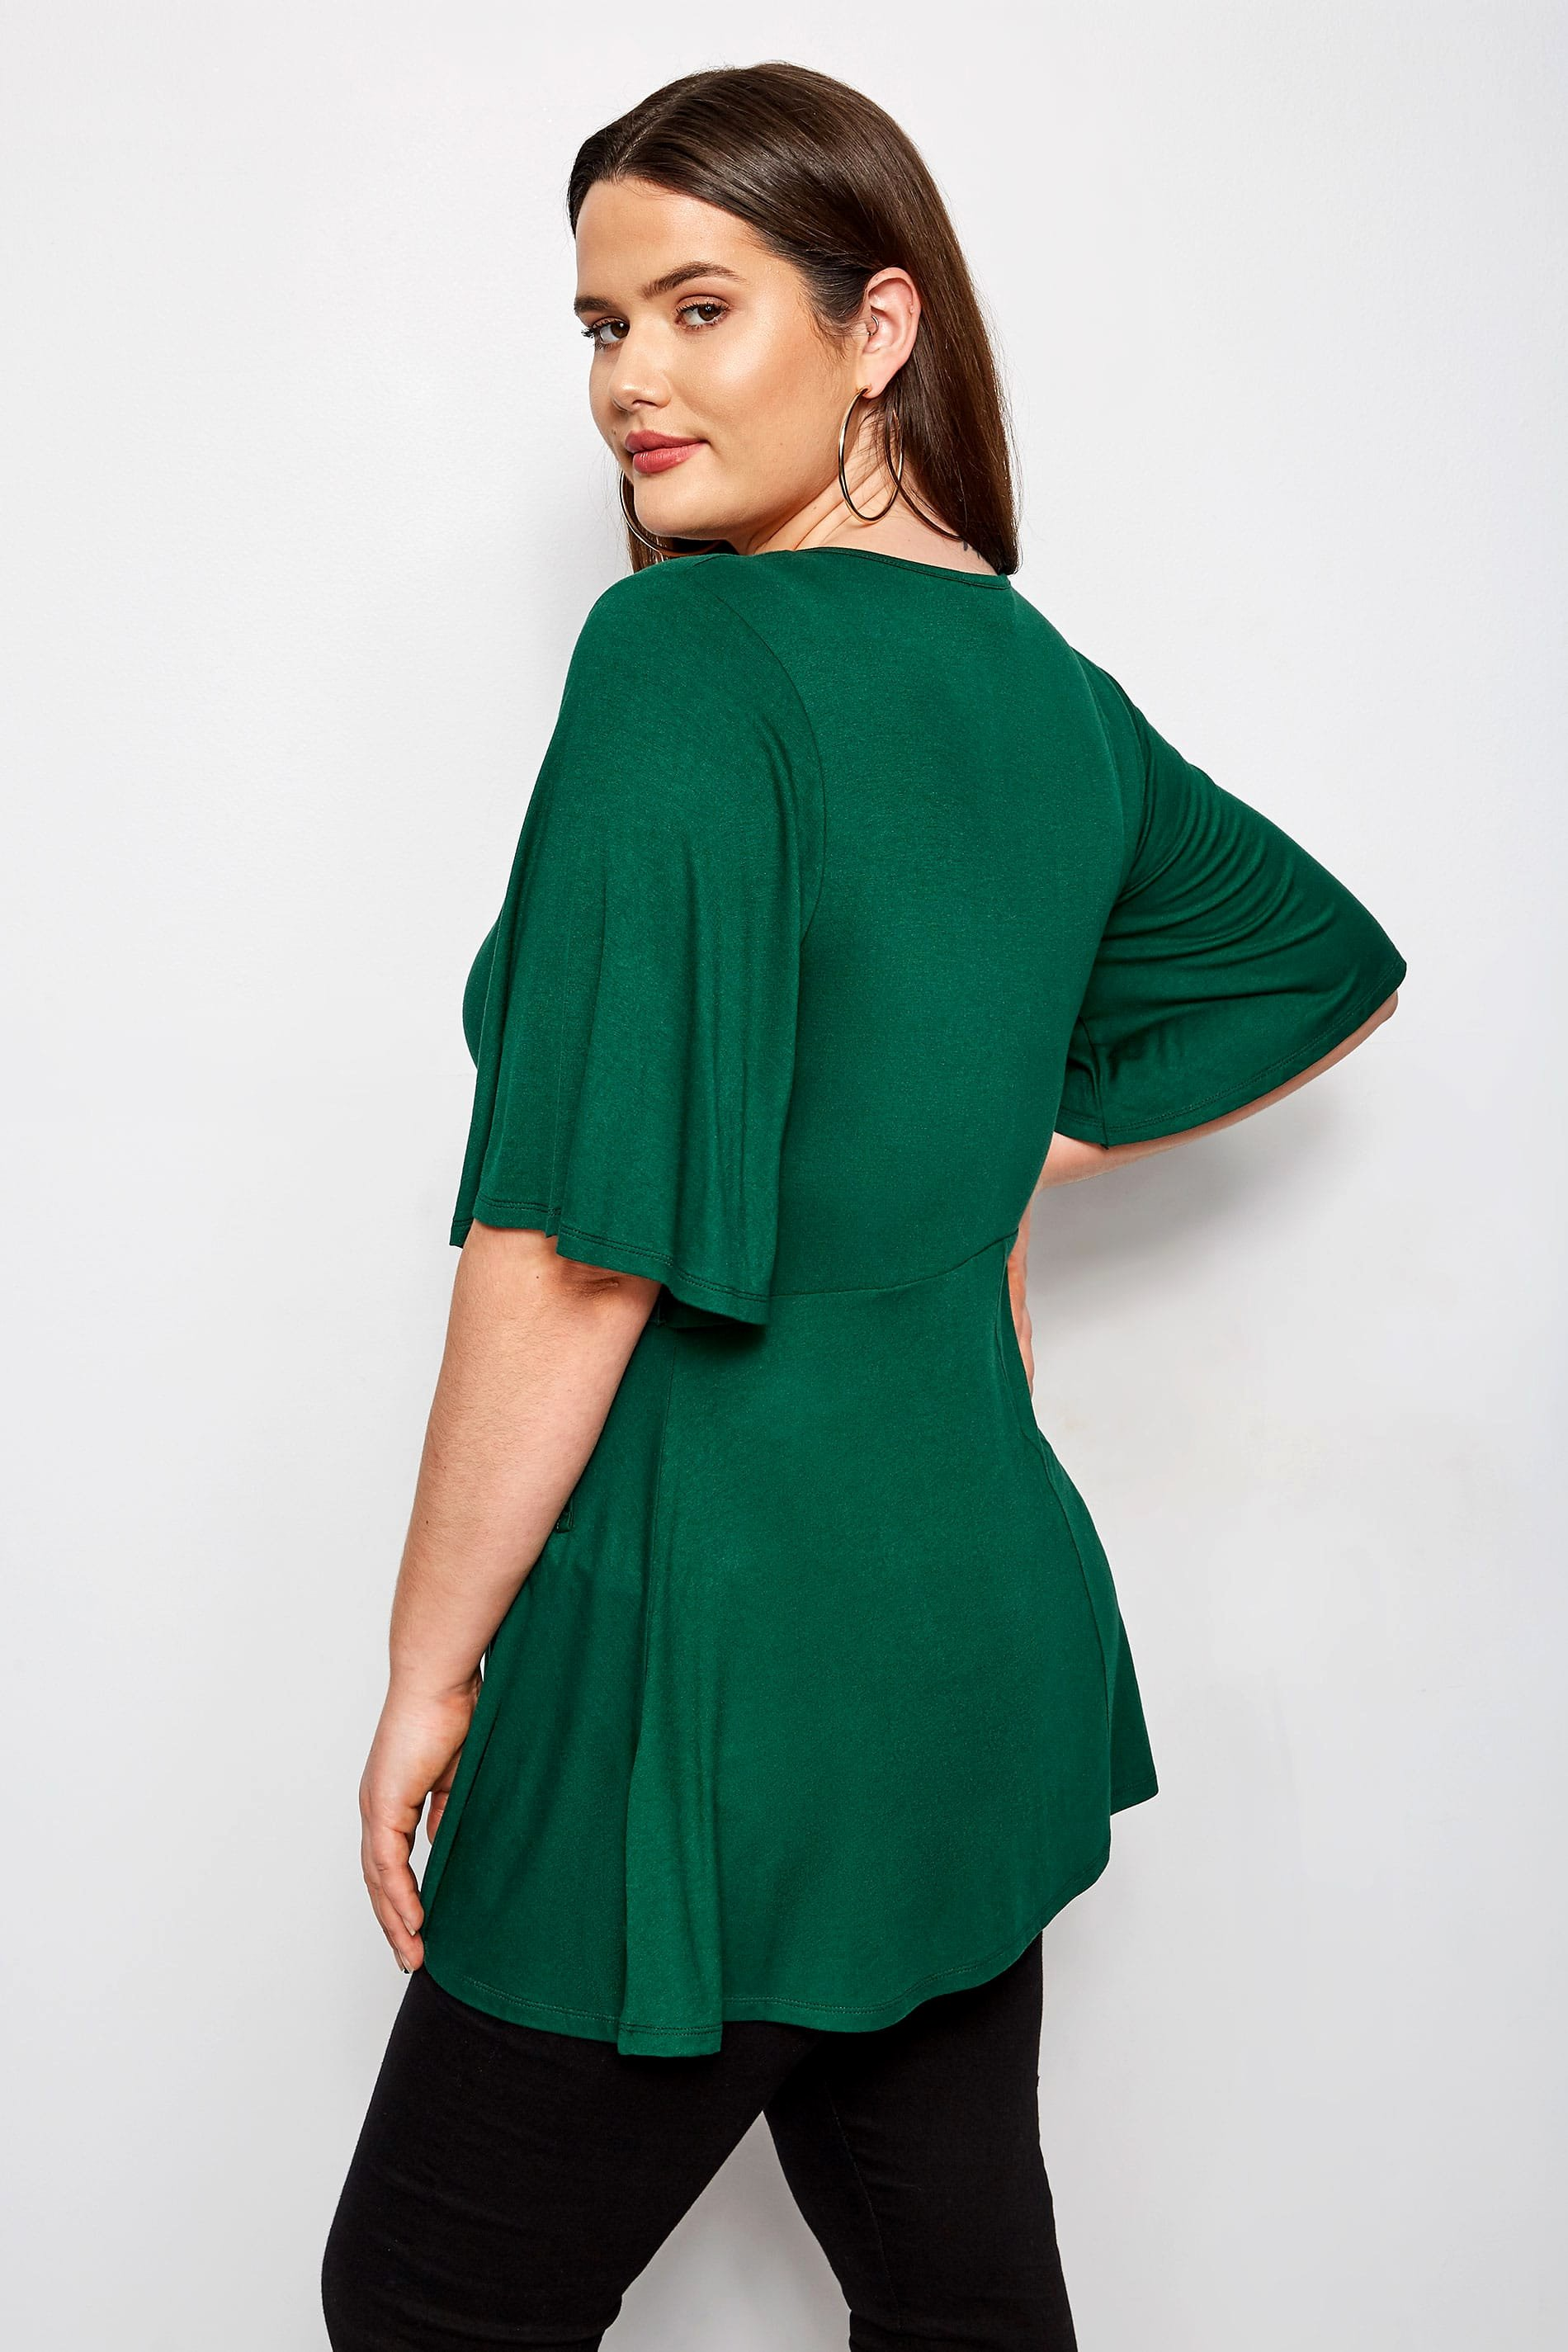 Plus Size Green Kimono Wrap top Sizes 16 to 36